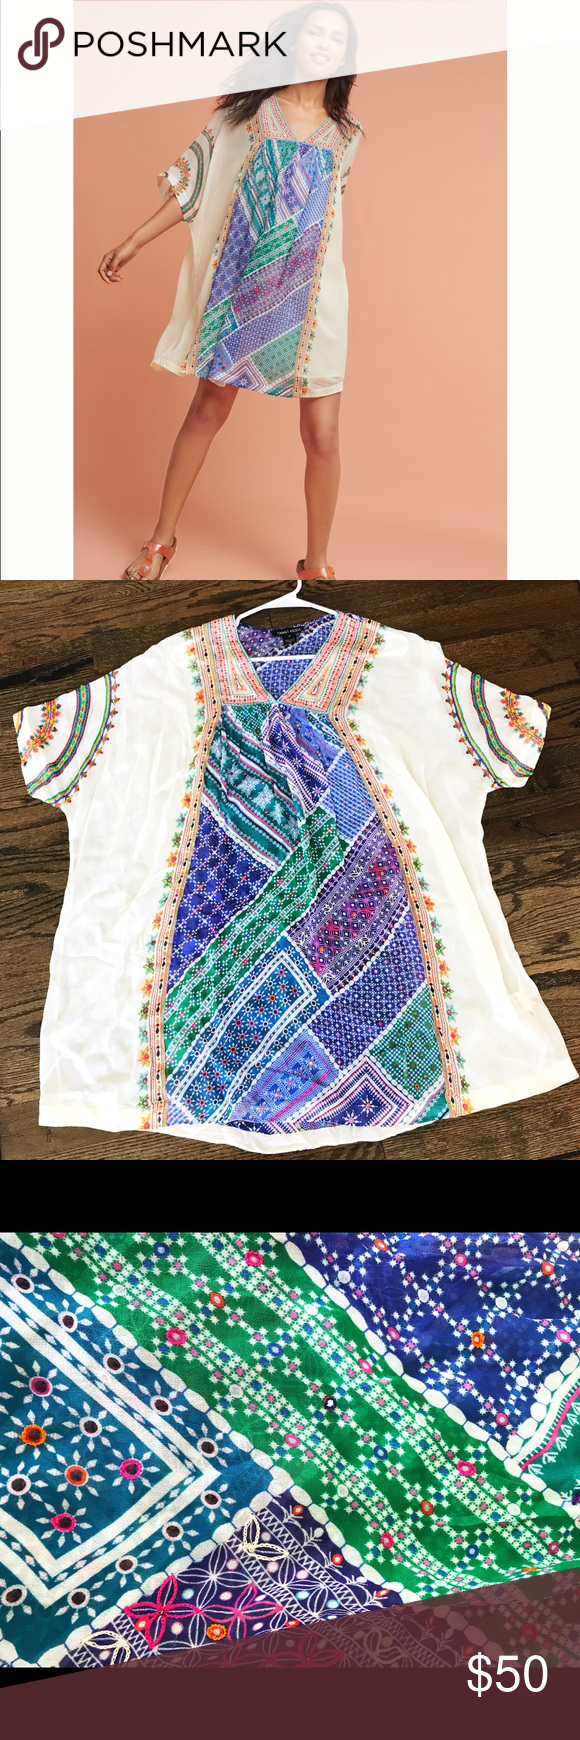 8b4aeda7cd7d Anthropologie Tanvi Kedia Veena Beaded Caftan Top In excellent condition  Absolutely stunning! Tanvi Kedia Tops Tunics